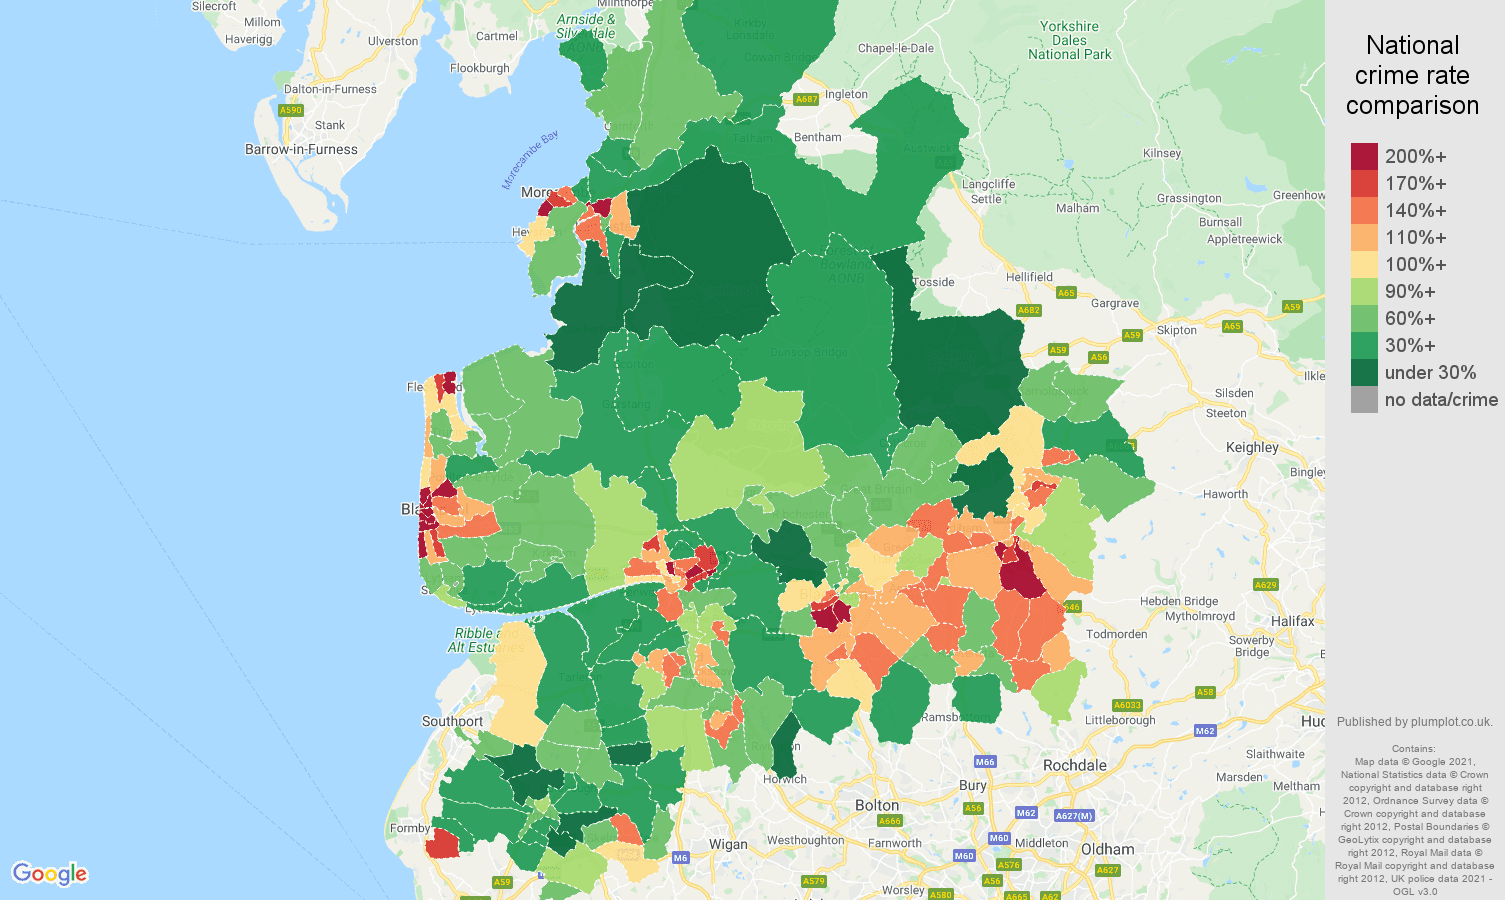 Lancashire violent crime rate comparison map